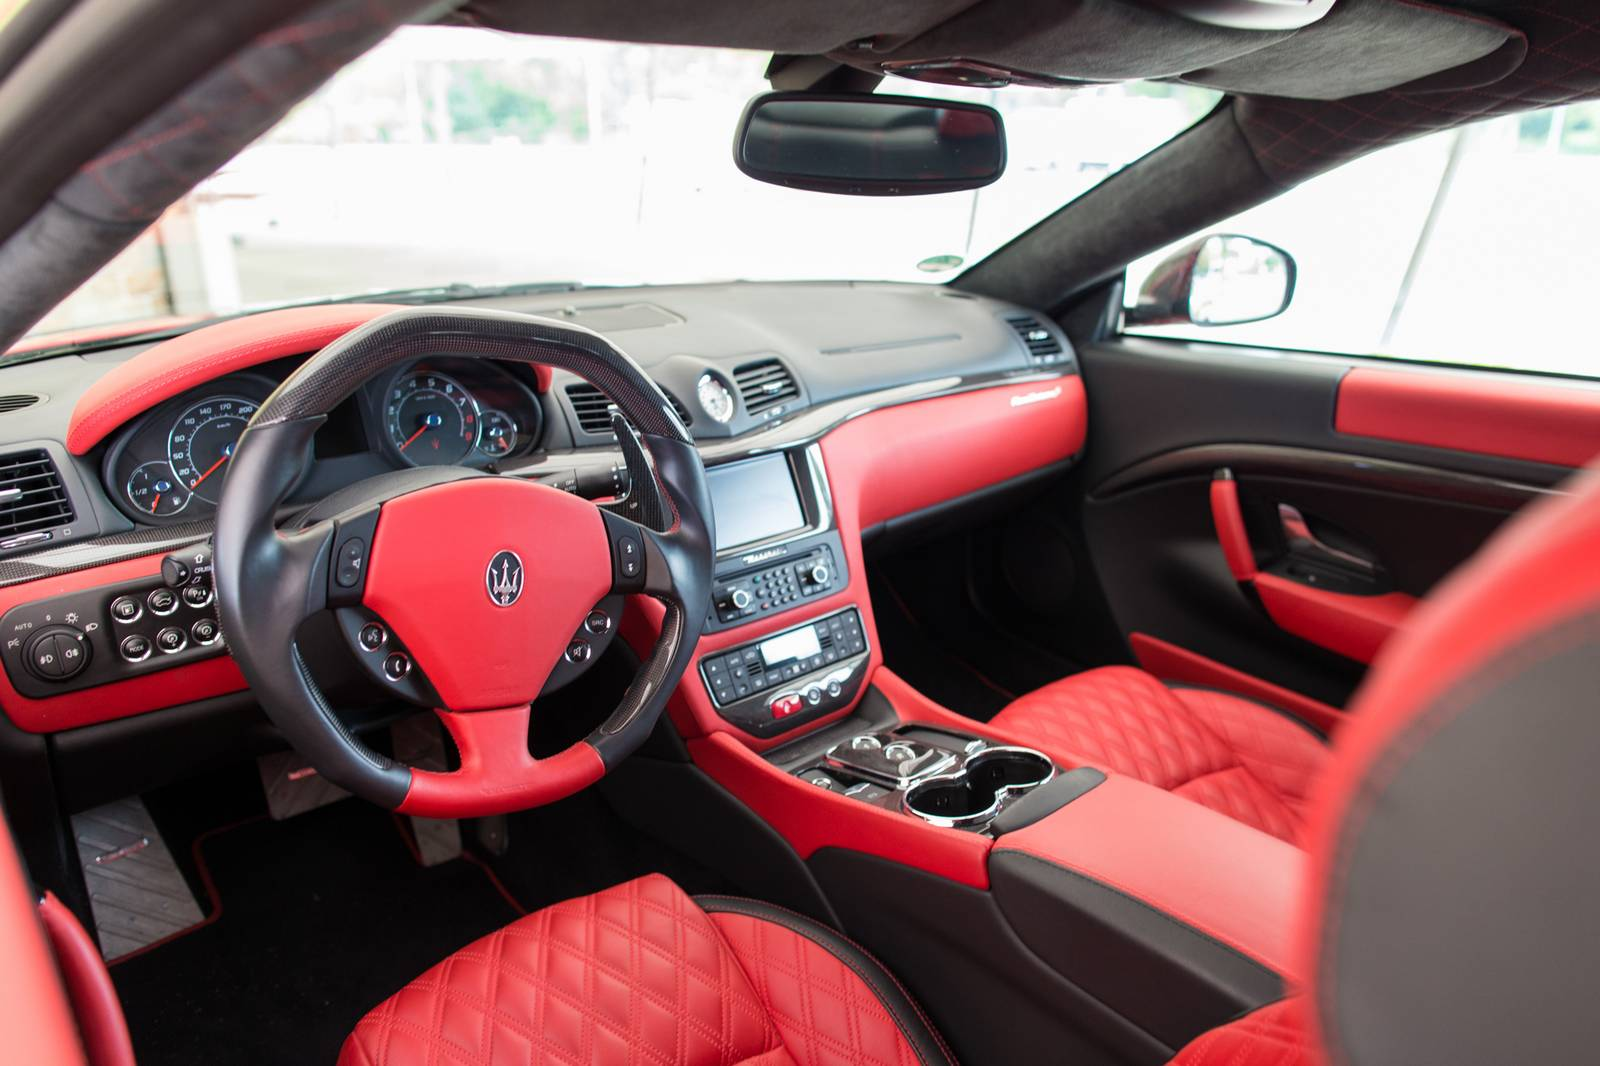 Mansory maserati granturismo s rosso mondiale review for White maserati red interior